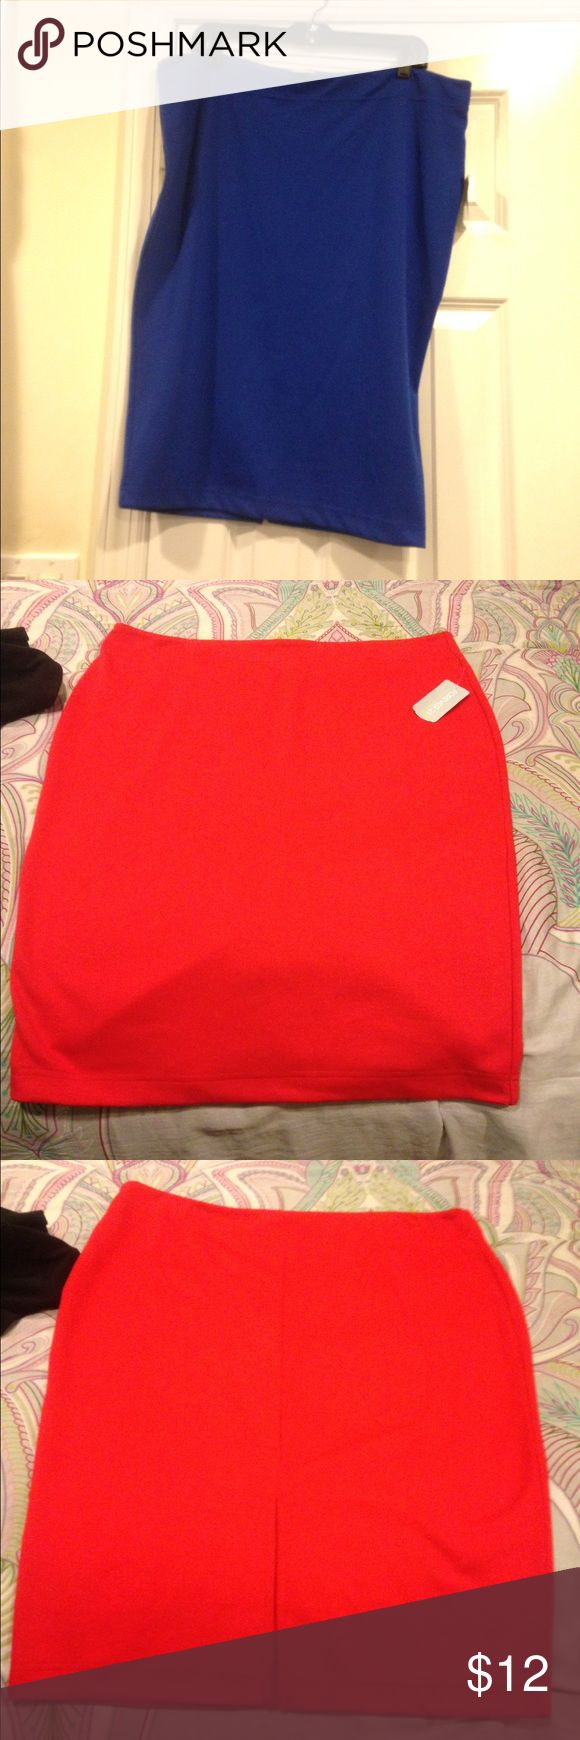 Bundle deal: red and royal blue pencil skirt Royal blue pencil skirt with a slit in the back. Red pencil skirt with a slit in the back. Forever 21 Skirts Pencil